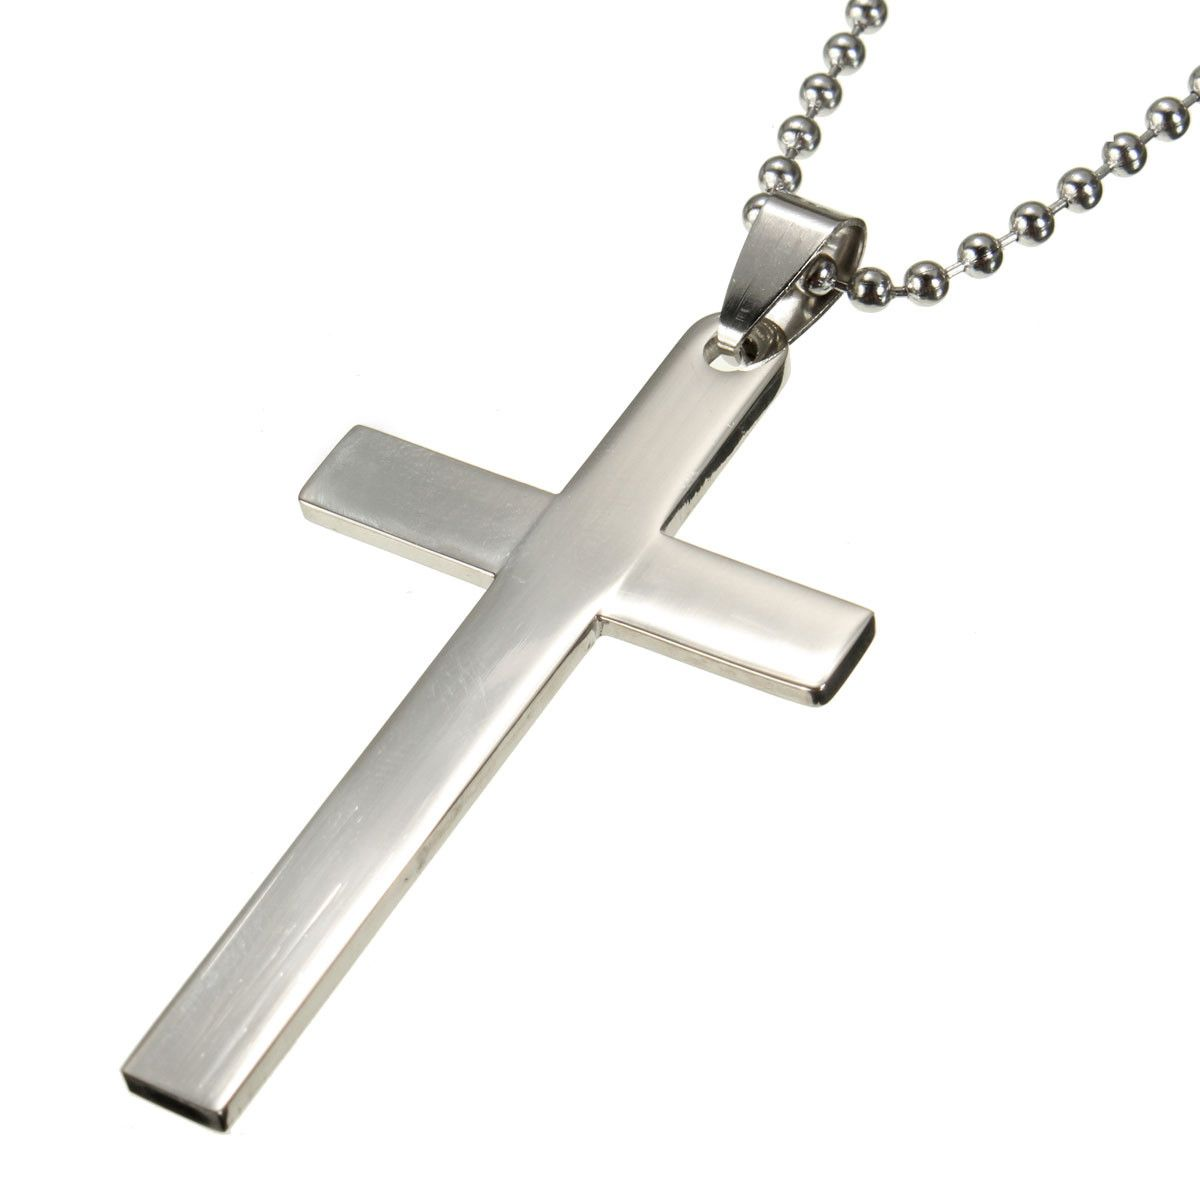 Sale 29 165 cross pendant chain stainless steel silver unisex sale 29 165 cross pendant chain stainless steel silver unisex necklace aloadofball Gallery